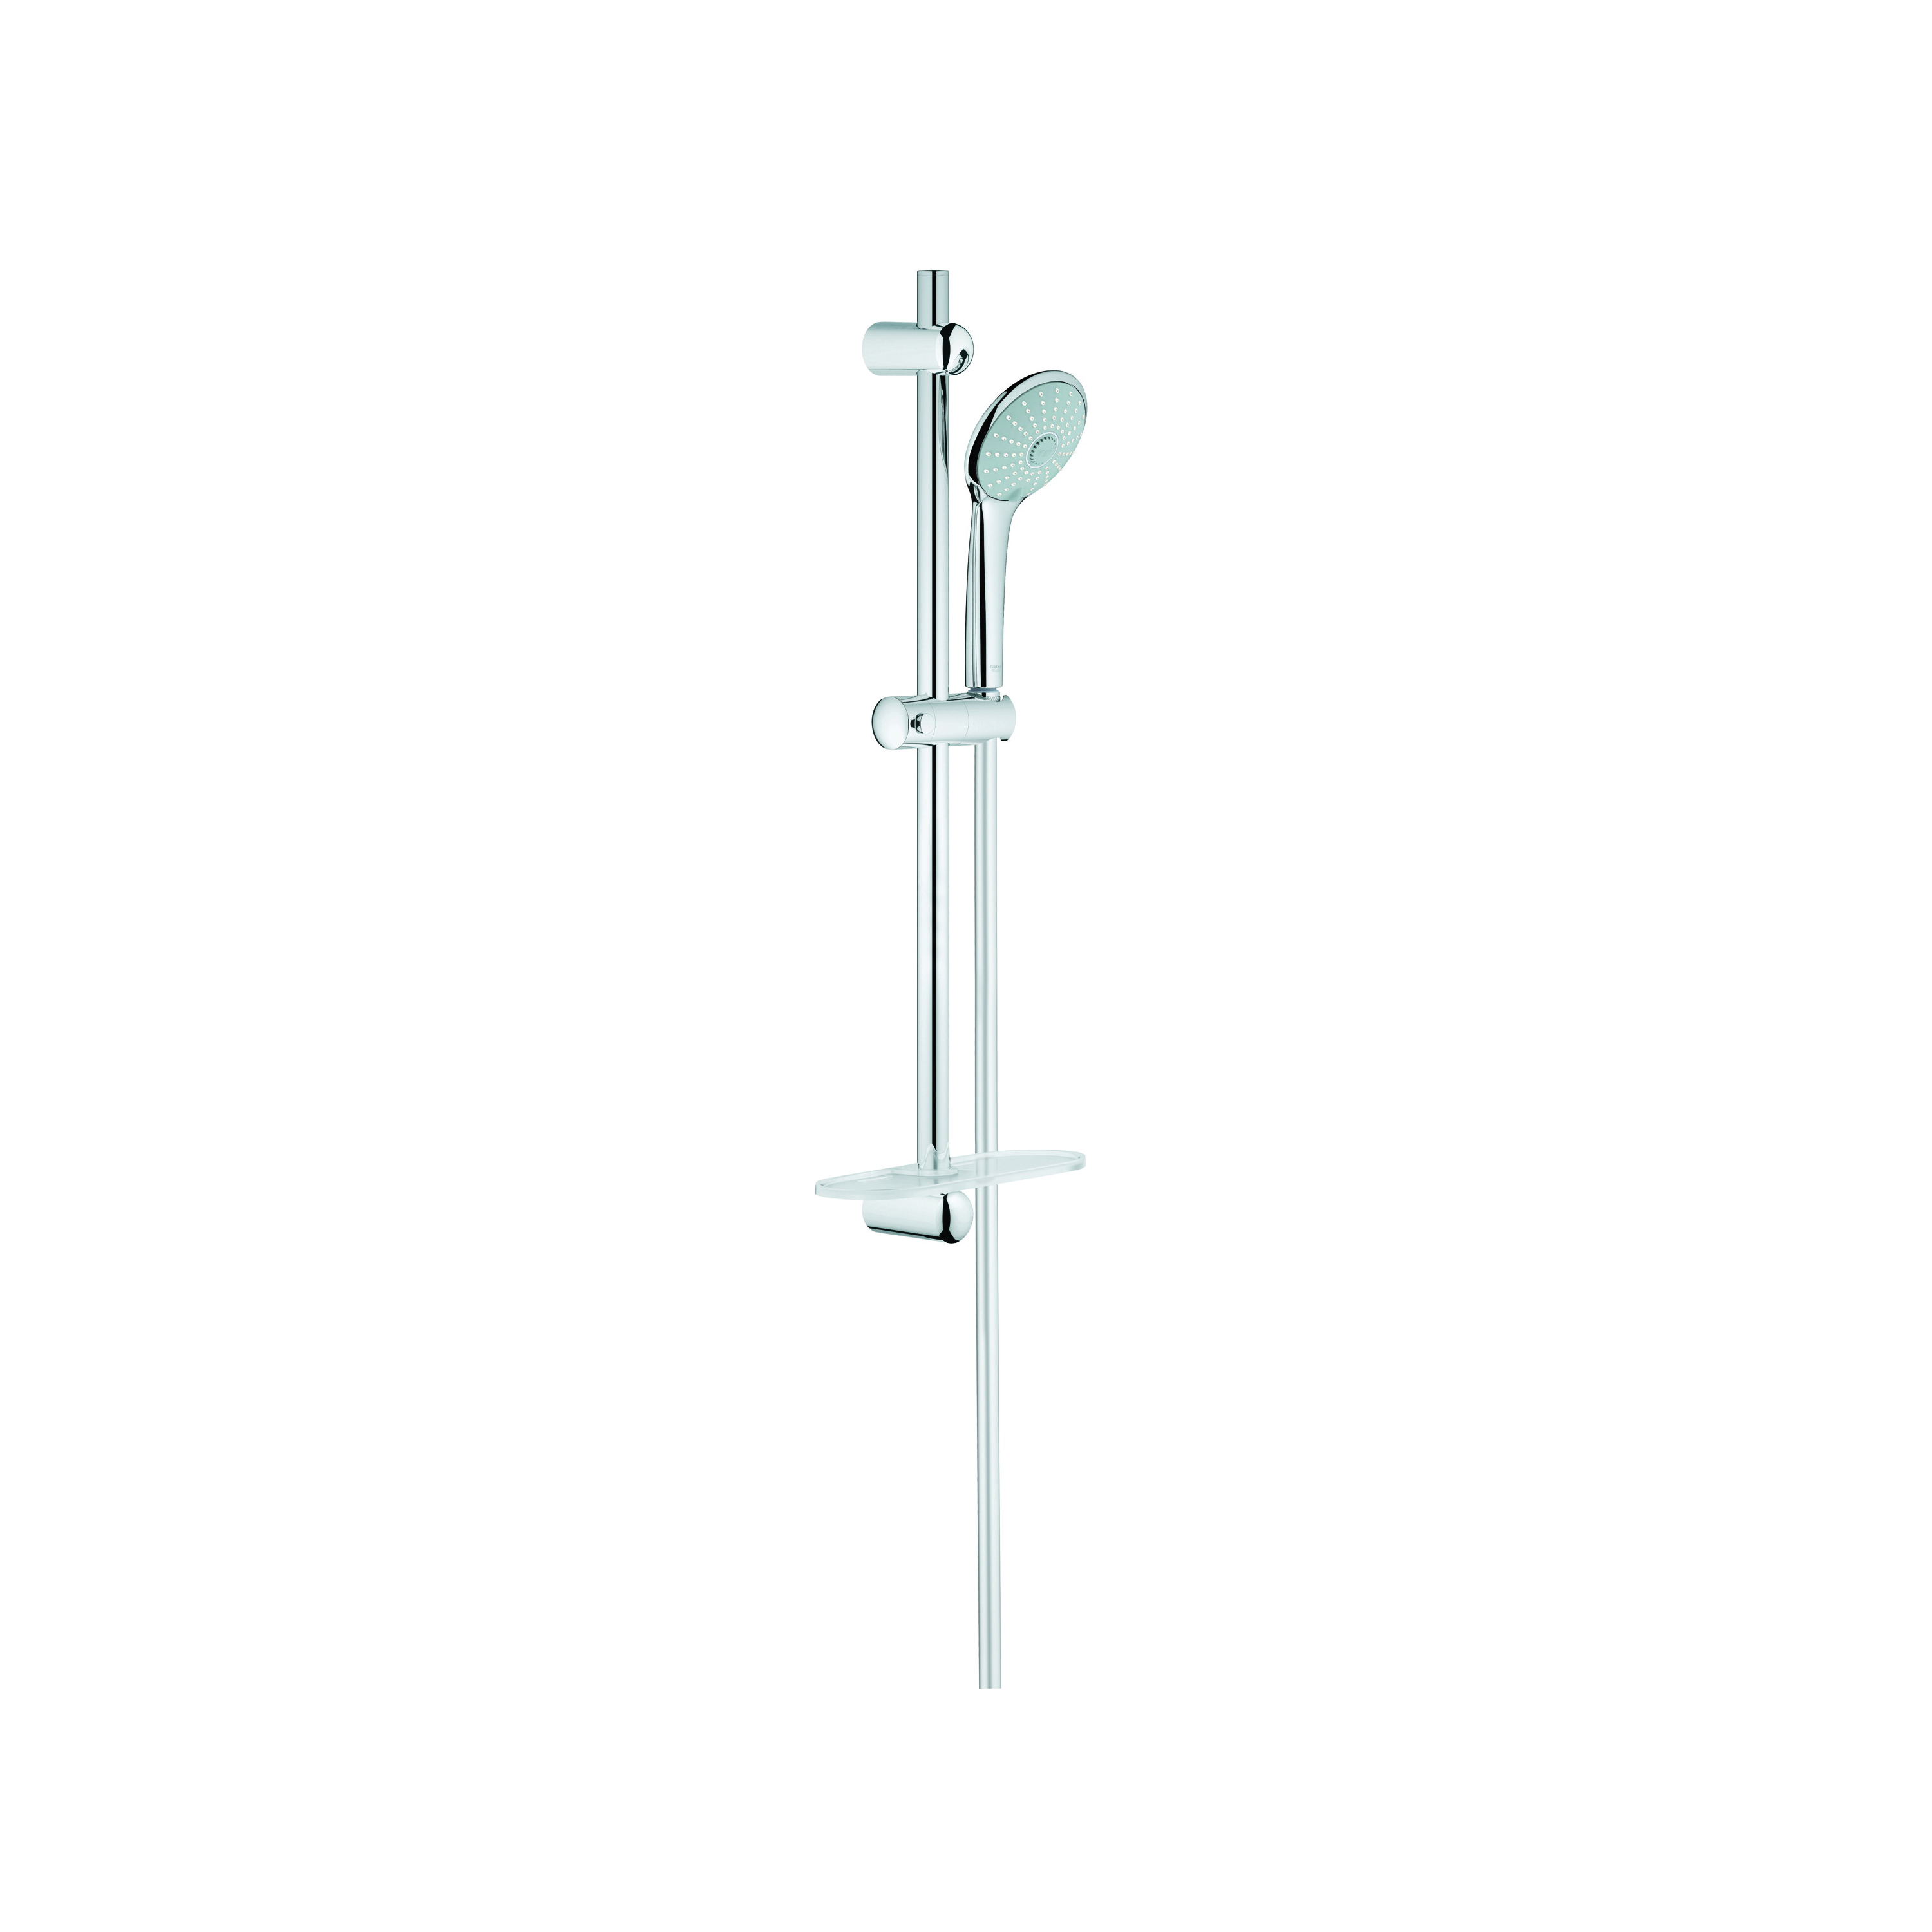 GROHE 27243001 Euphoria 110 Massage Shower Set, 4-1/2 in Dia, 2.5 gpm, 69 in L Hose, G-1/2, Slide Bar: Yes, Chrome Plated, Import